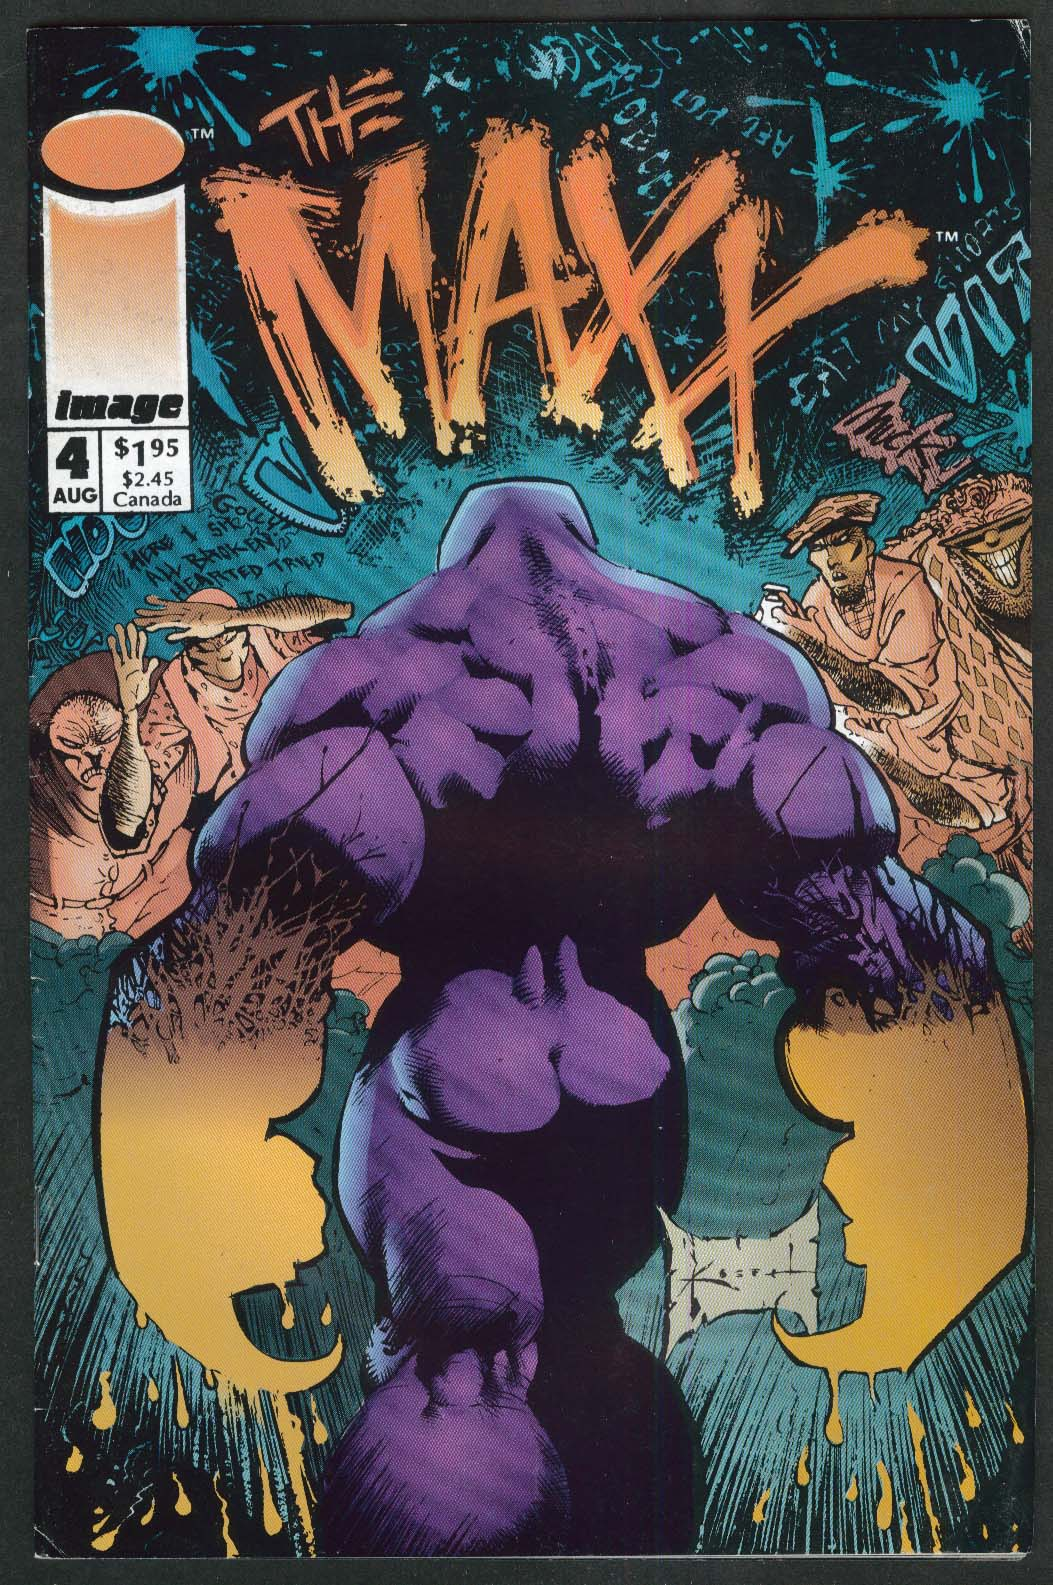 The MAXX #4 Image comic book 8 1993 1st Printing